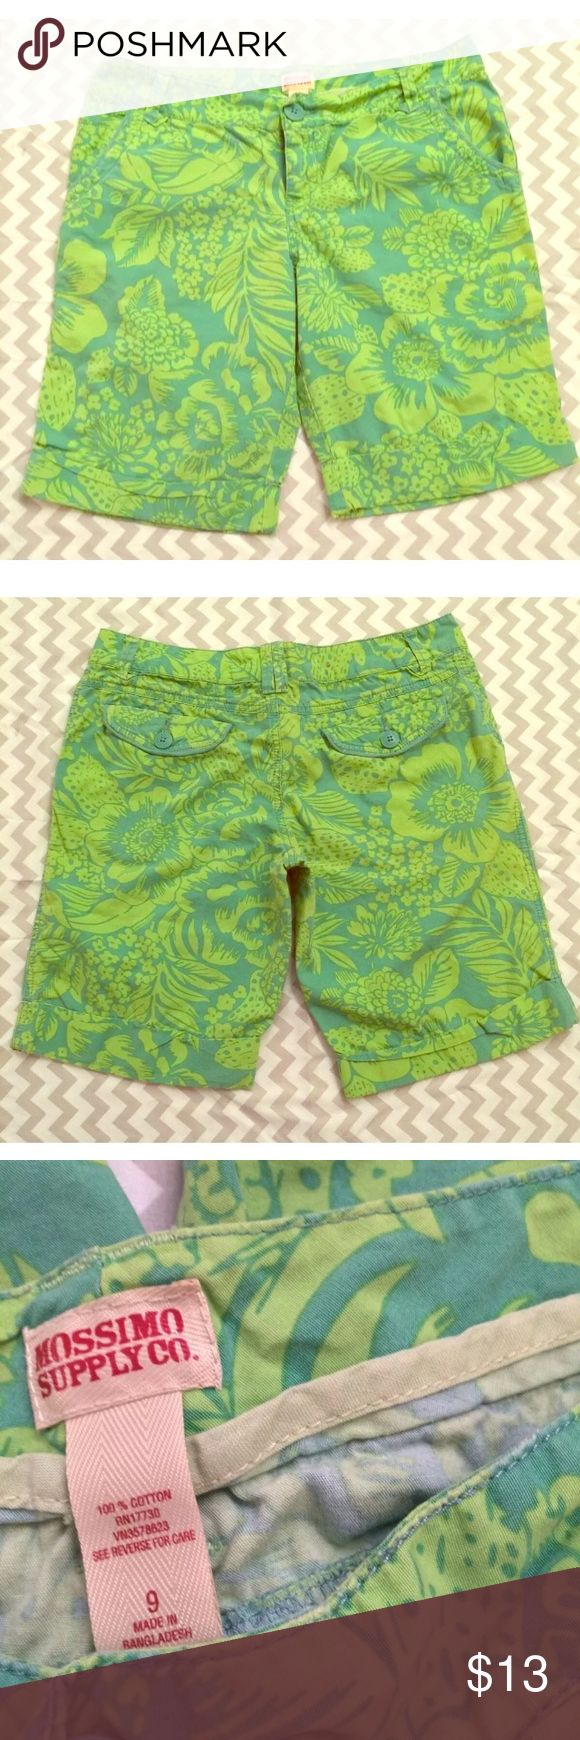 Mossimo Neon Green and Teal Floral Bermuda Shorts Mossimo Bermuda shorts in a juniors size 9. Bright lime green and blue, these shorts POP! Beautiful, summery, floral design. In great used condition, no rips or stains. Measurements- Waist: 16 in. Hips: 19 in. Length: 18 in. Inseam: 10.5 in. Mossimo Supply Co. Shorts Bermudas